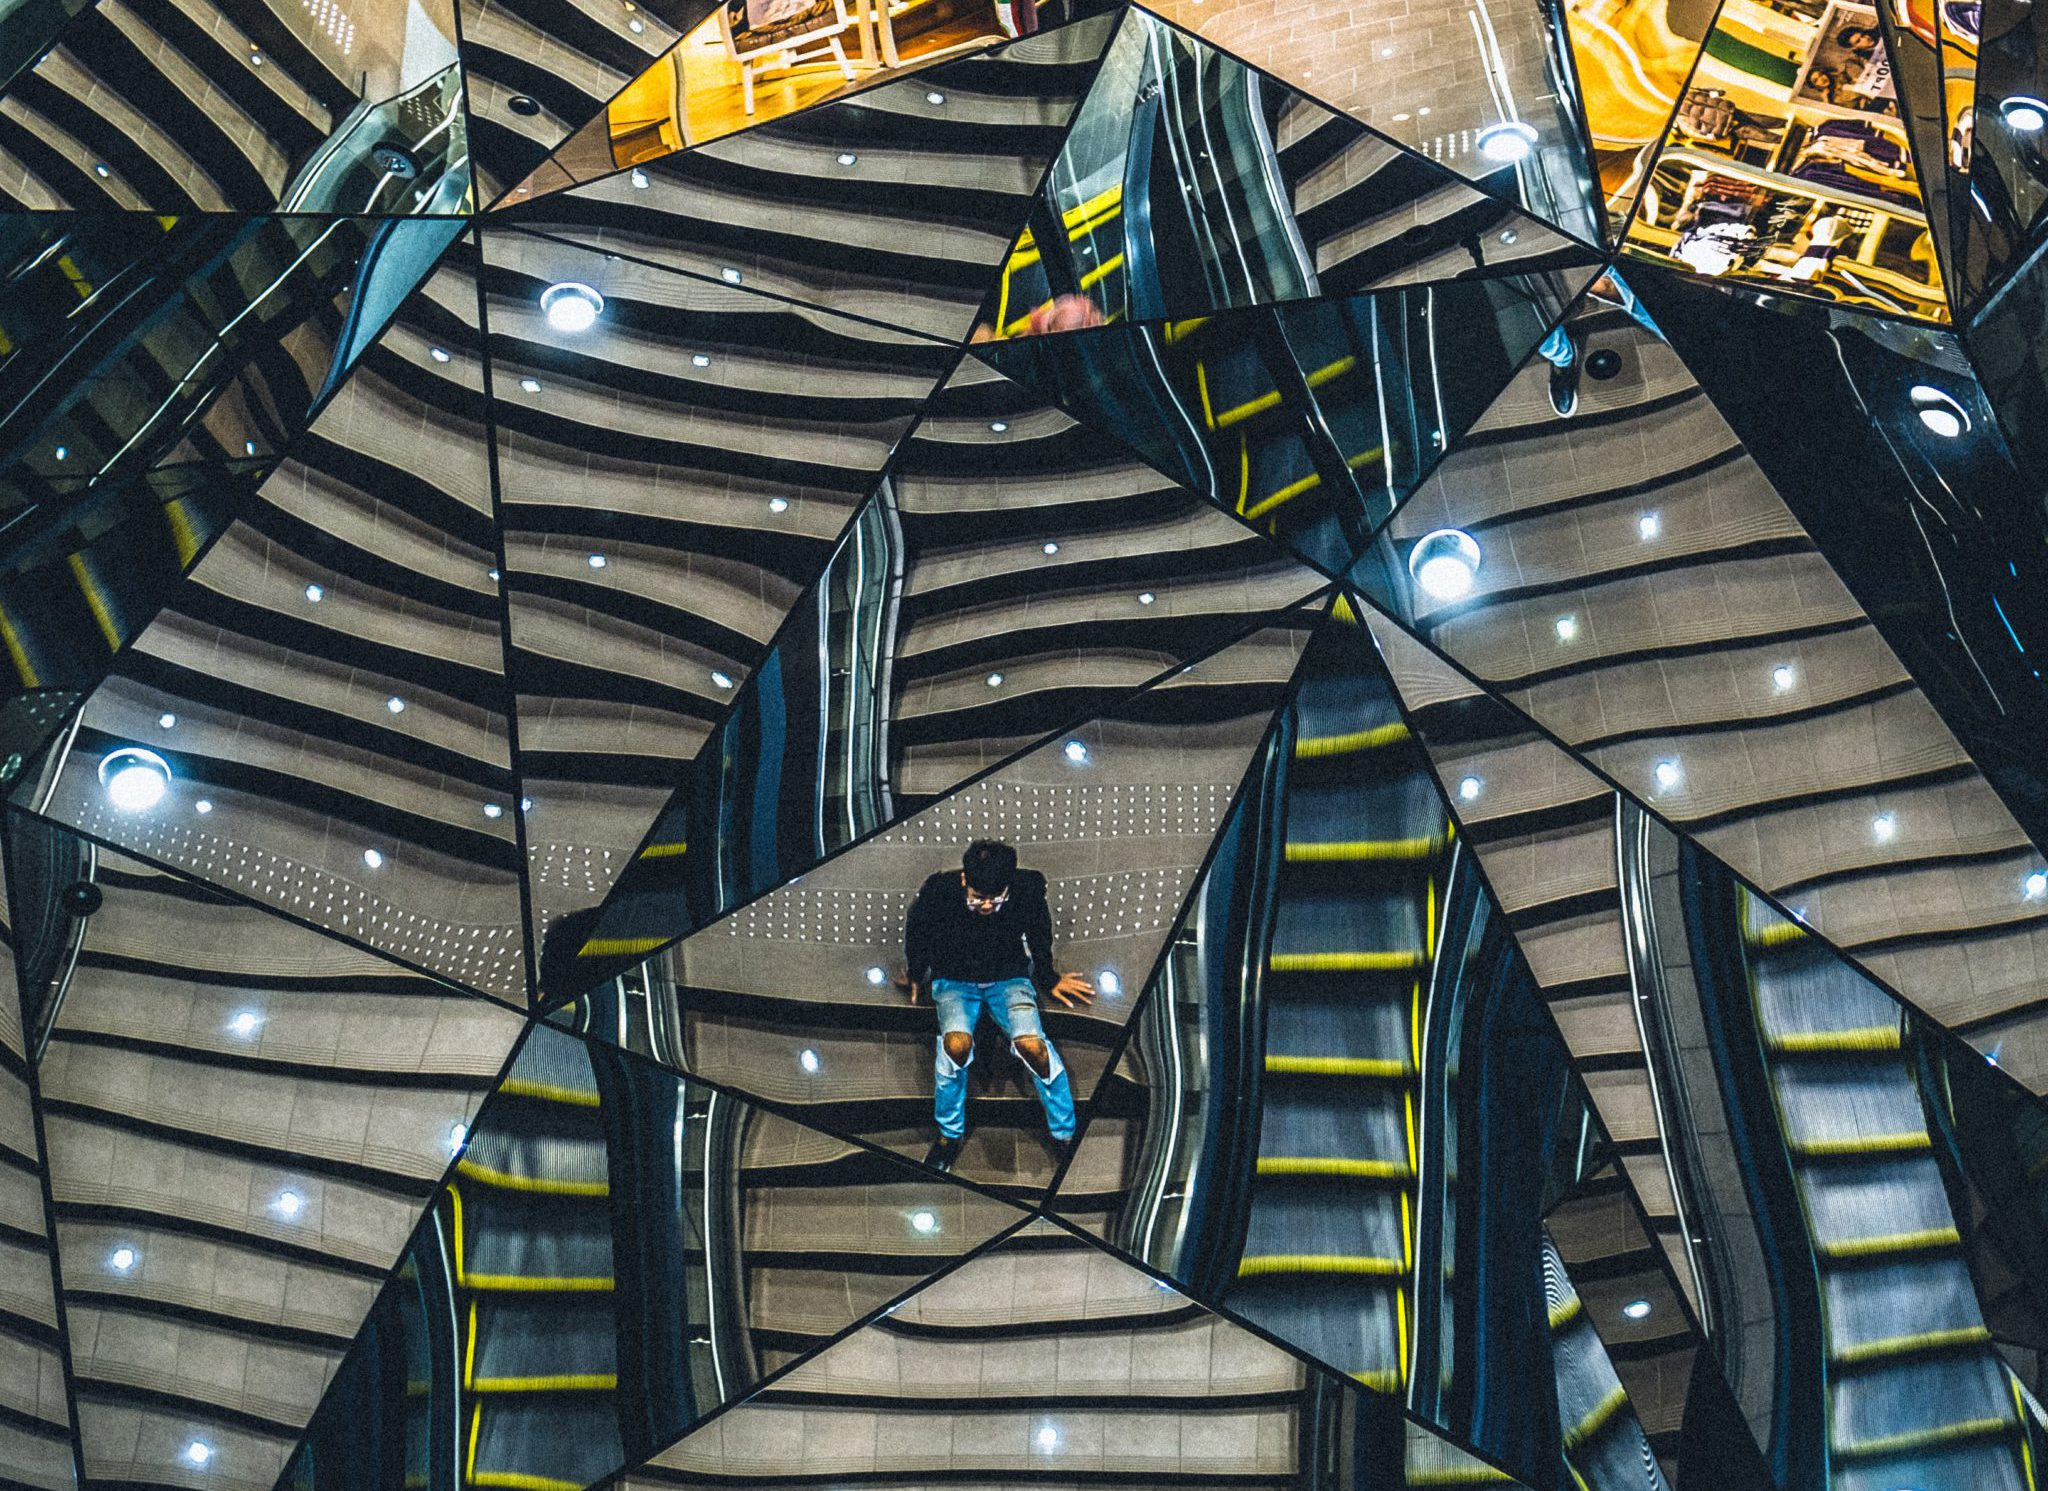 A person sits amid many triangular mirrors, fracturing the view around them.